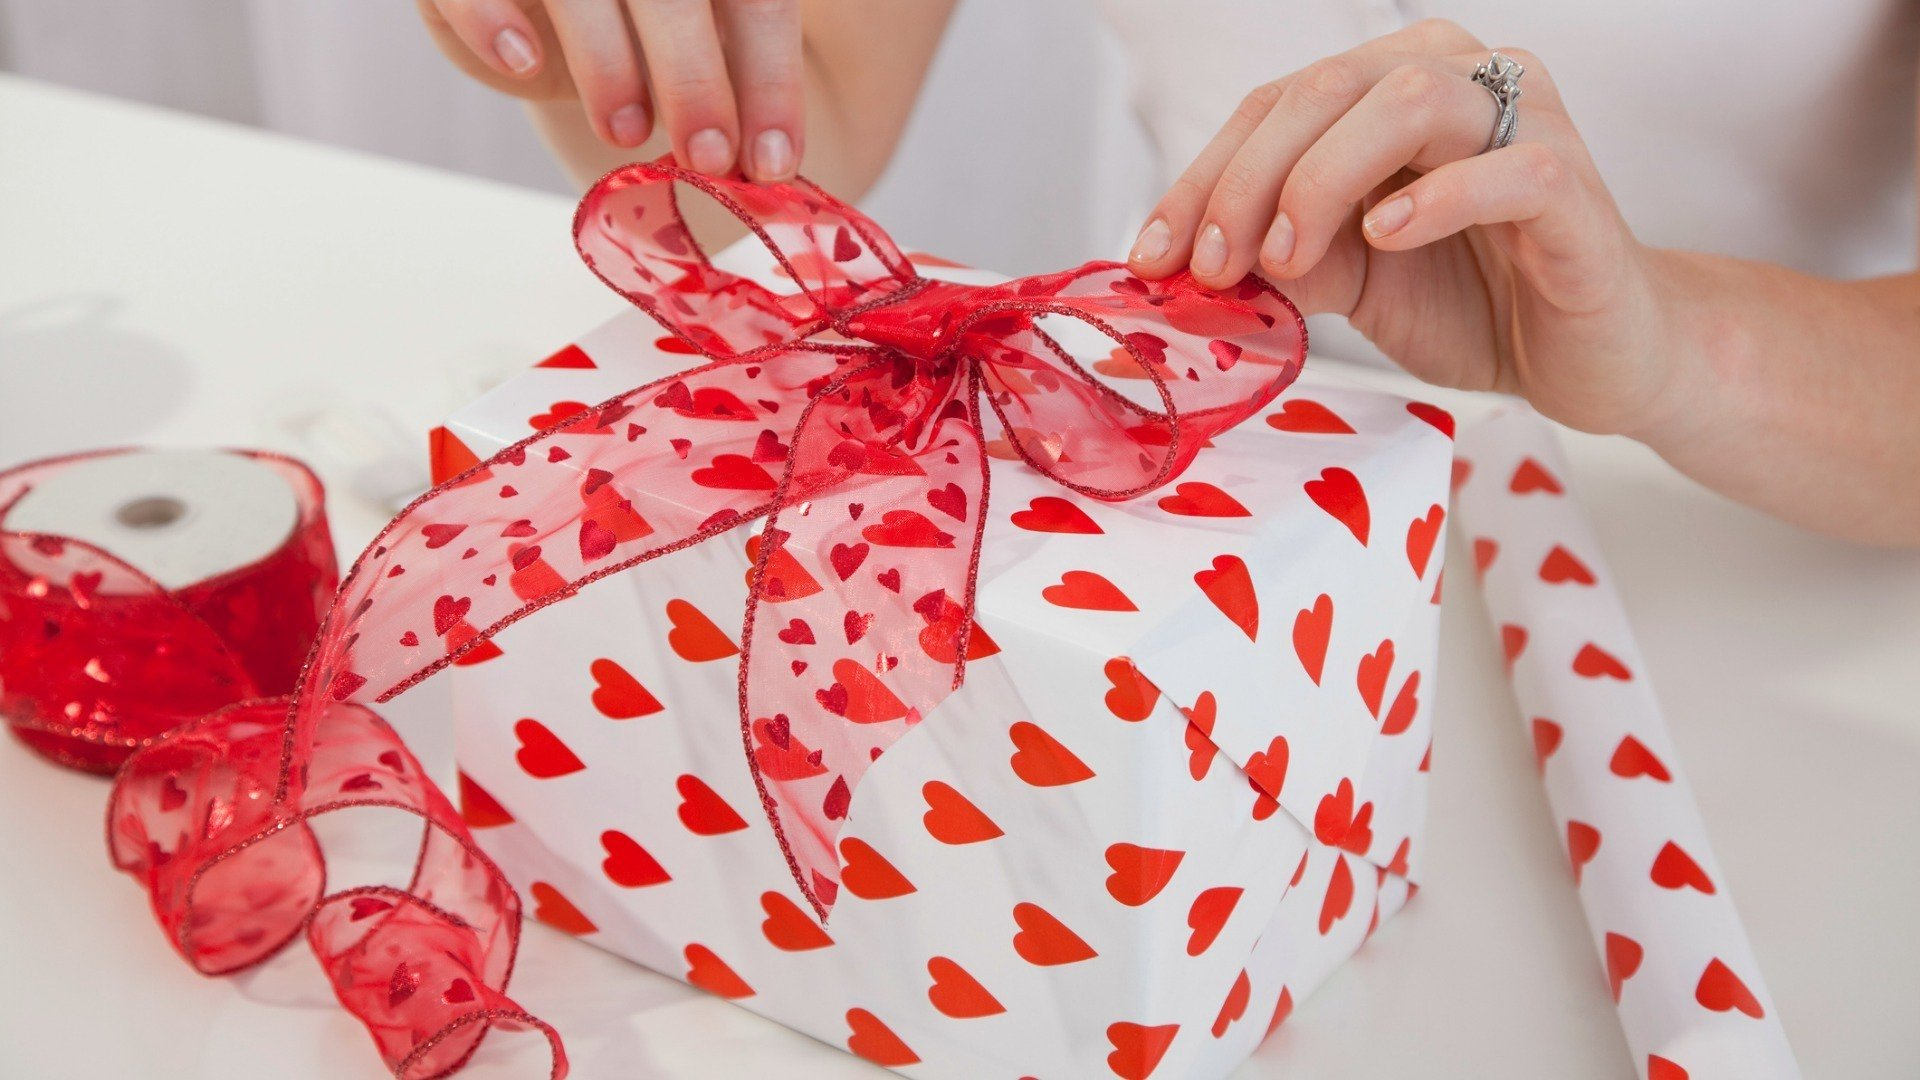 10 Trendy Valentine Day Gift Ideas For Him creative gifts ideas for the groom to be venuelook blog 7 2020